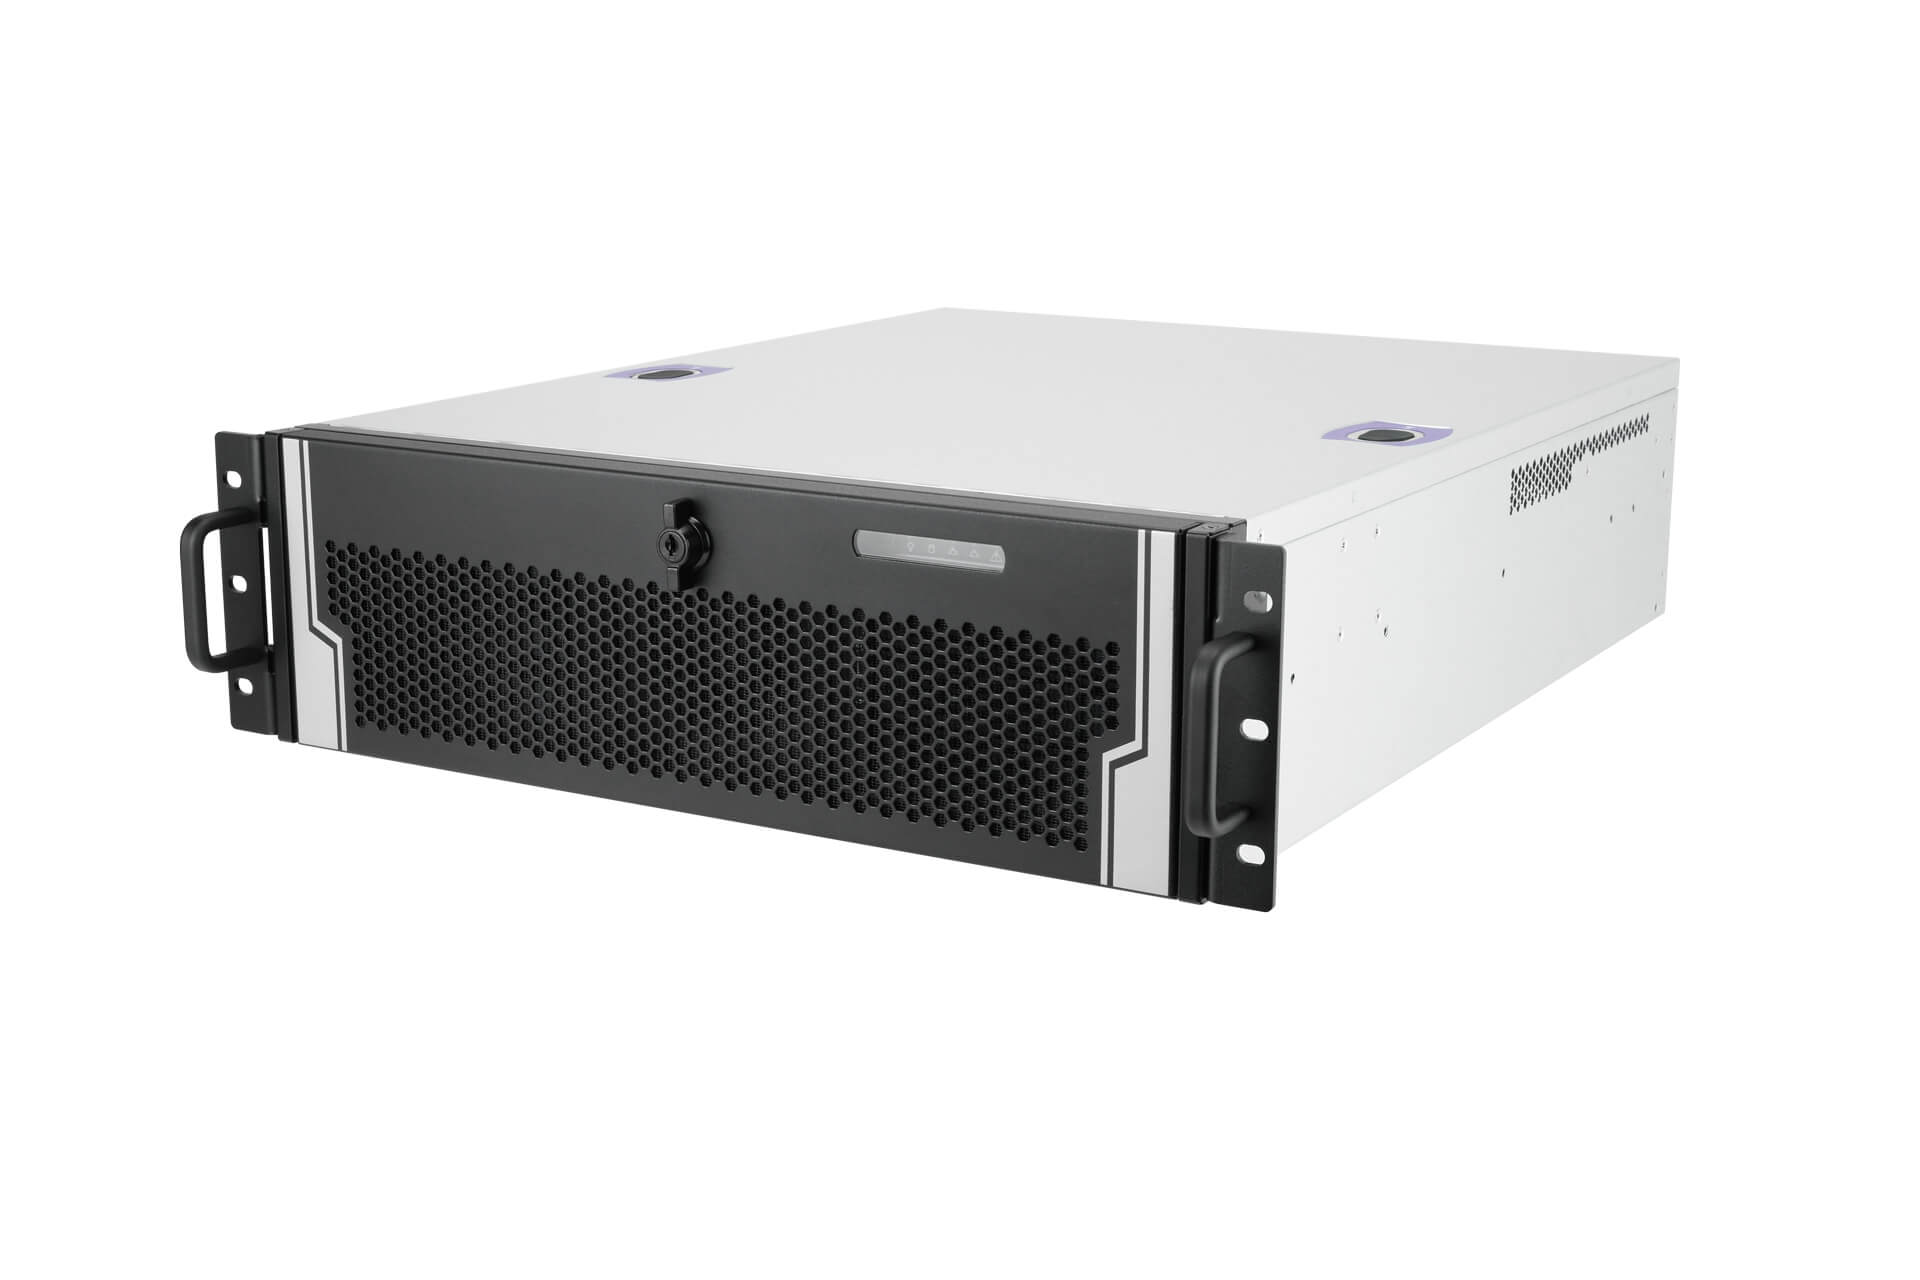 IW-R300-01N - server system assembly